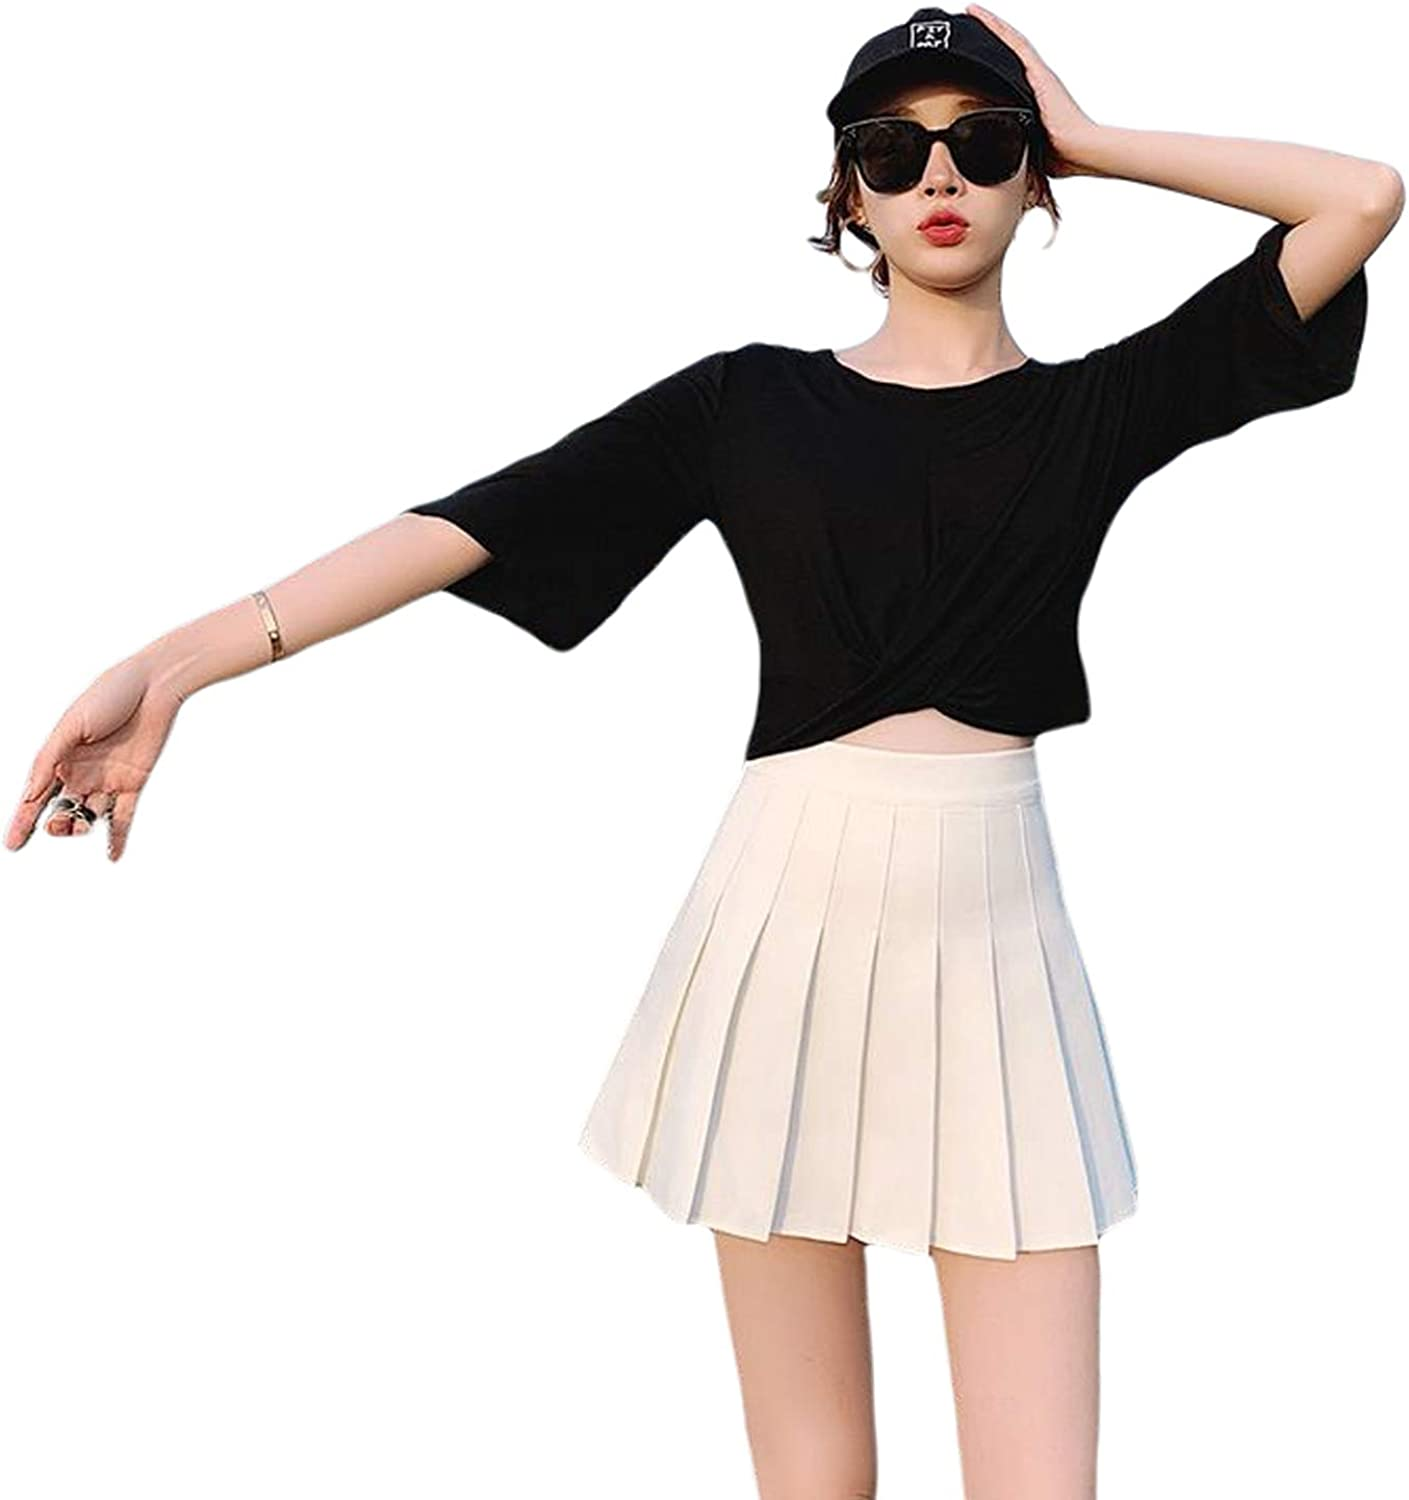 FAROOT Women's Casual High Waist Pleated A Line Solid Stretchy Mini Short Skirts